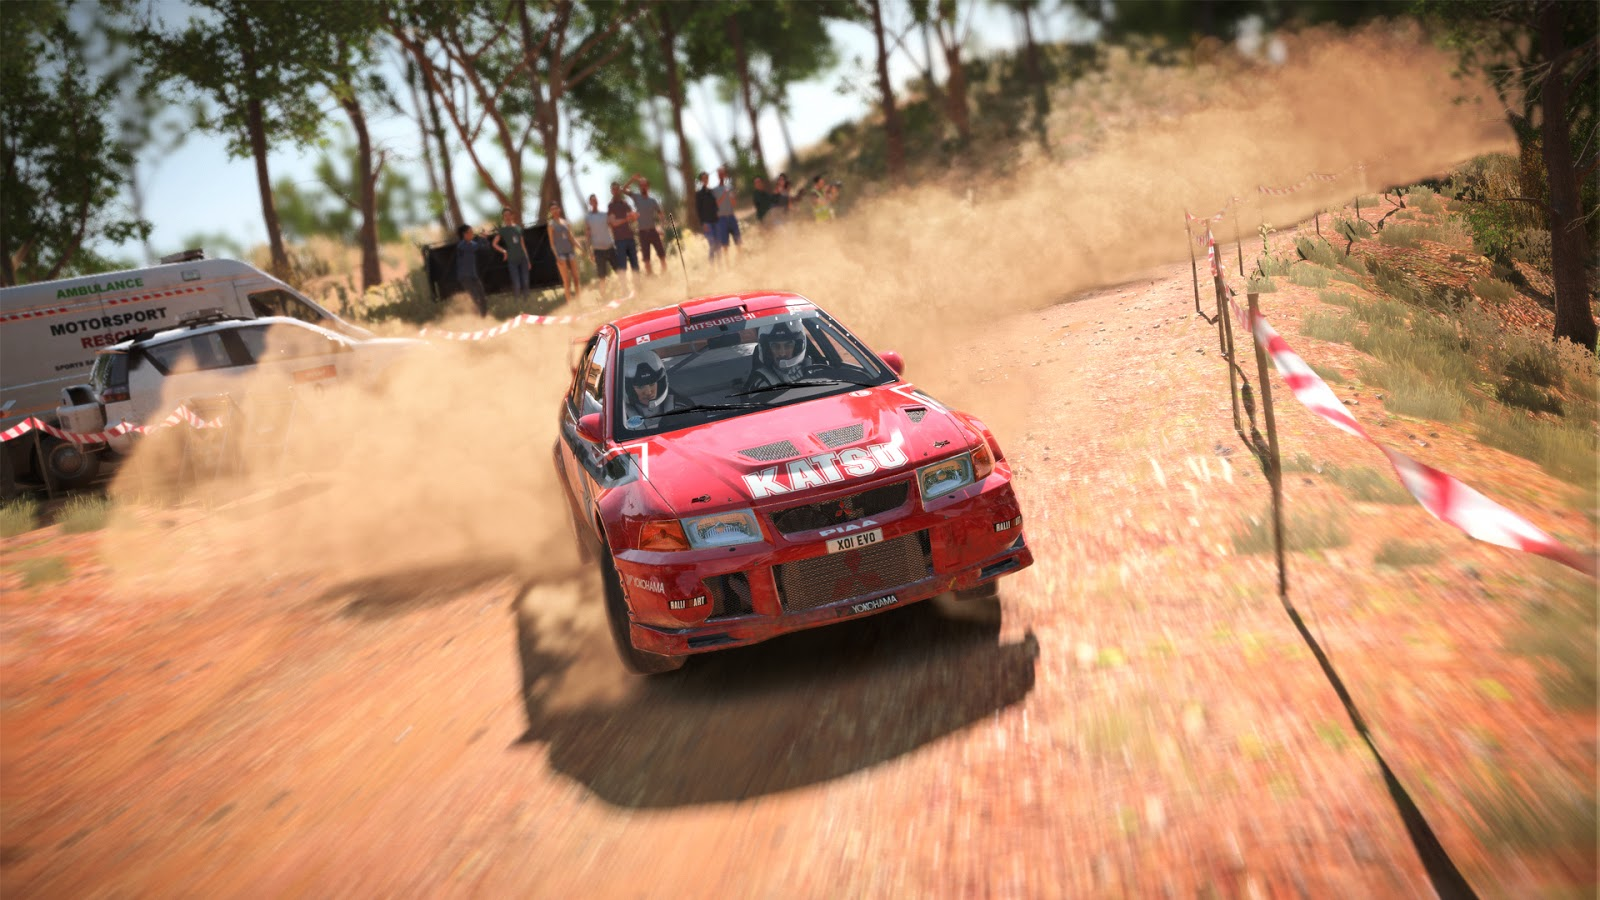 DiRT 4 ESPAÑOL PC (RELOADED) + Update v1.06 (BAT) + REPACK 5 DVD5 (JPW) 3